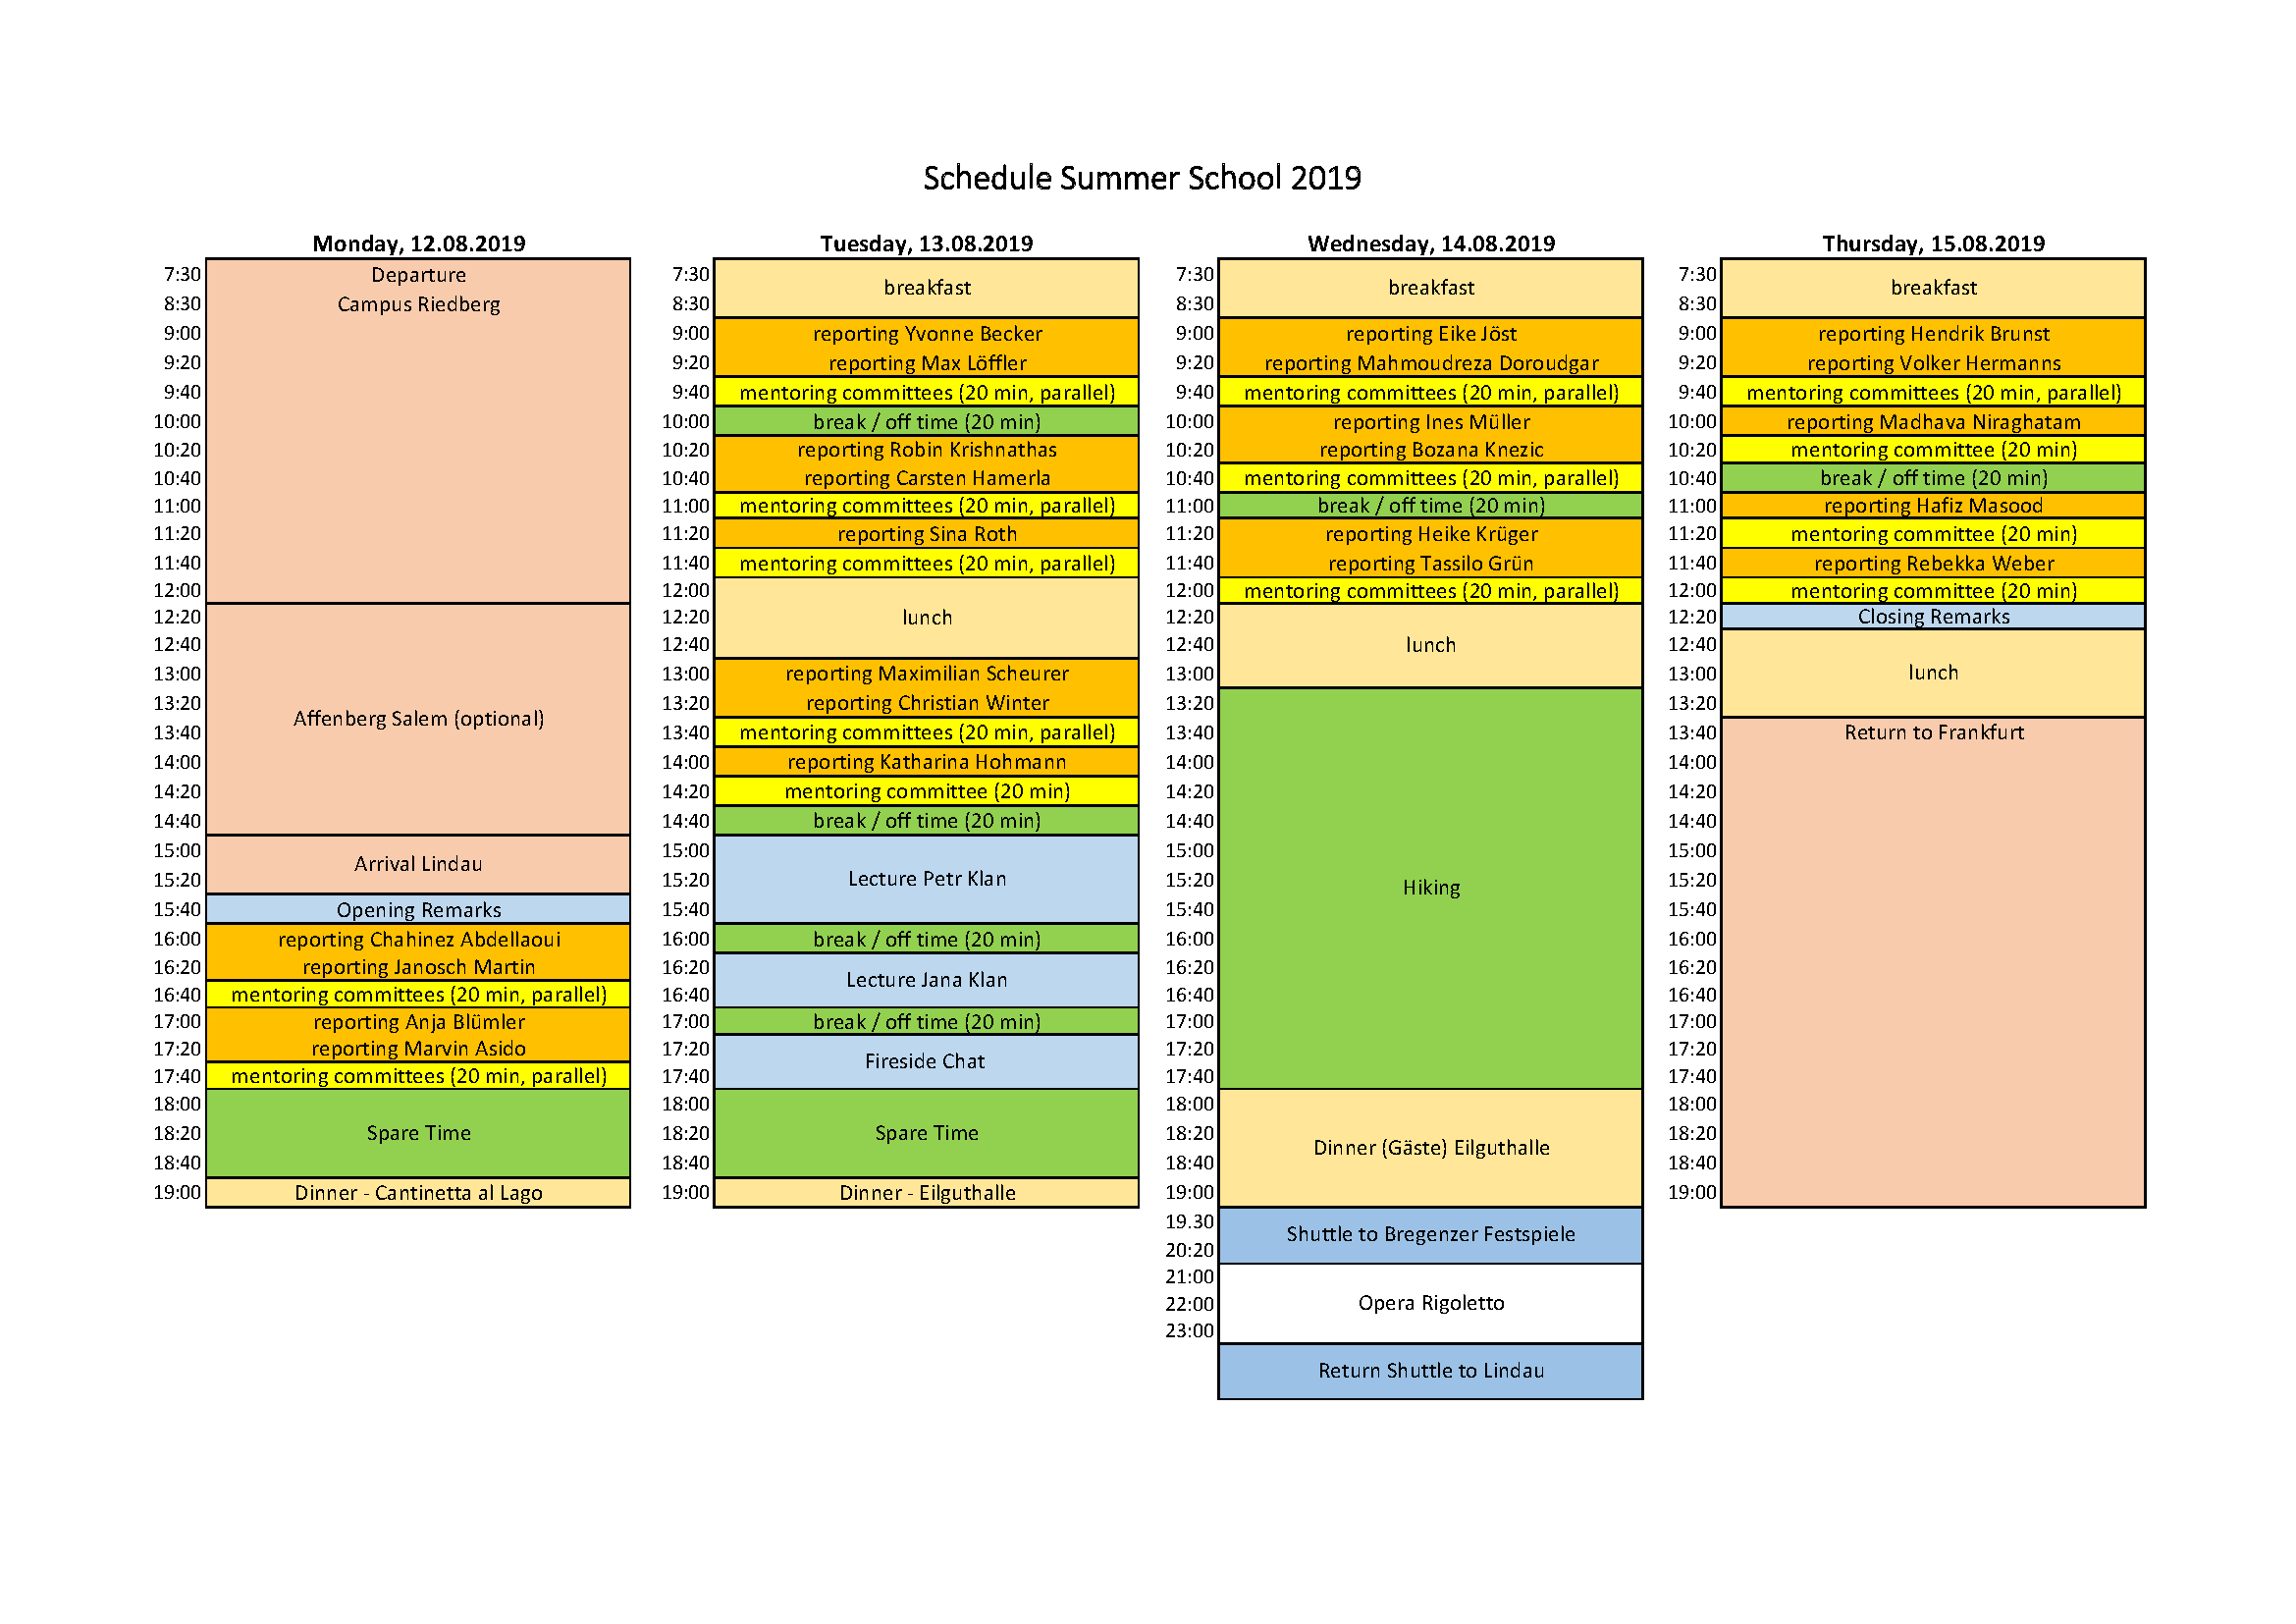 Schedule summer school 2019